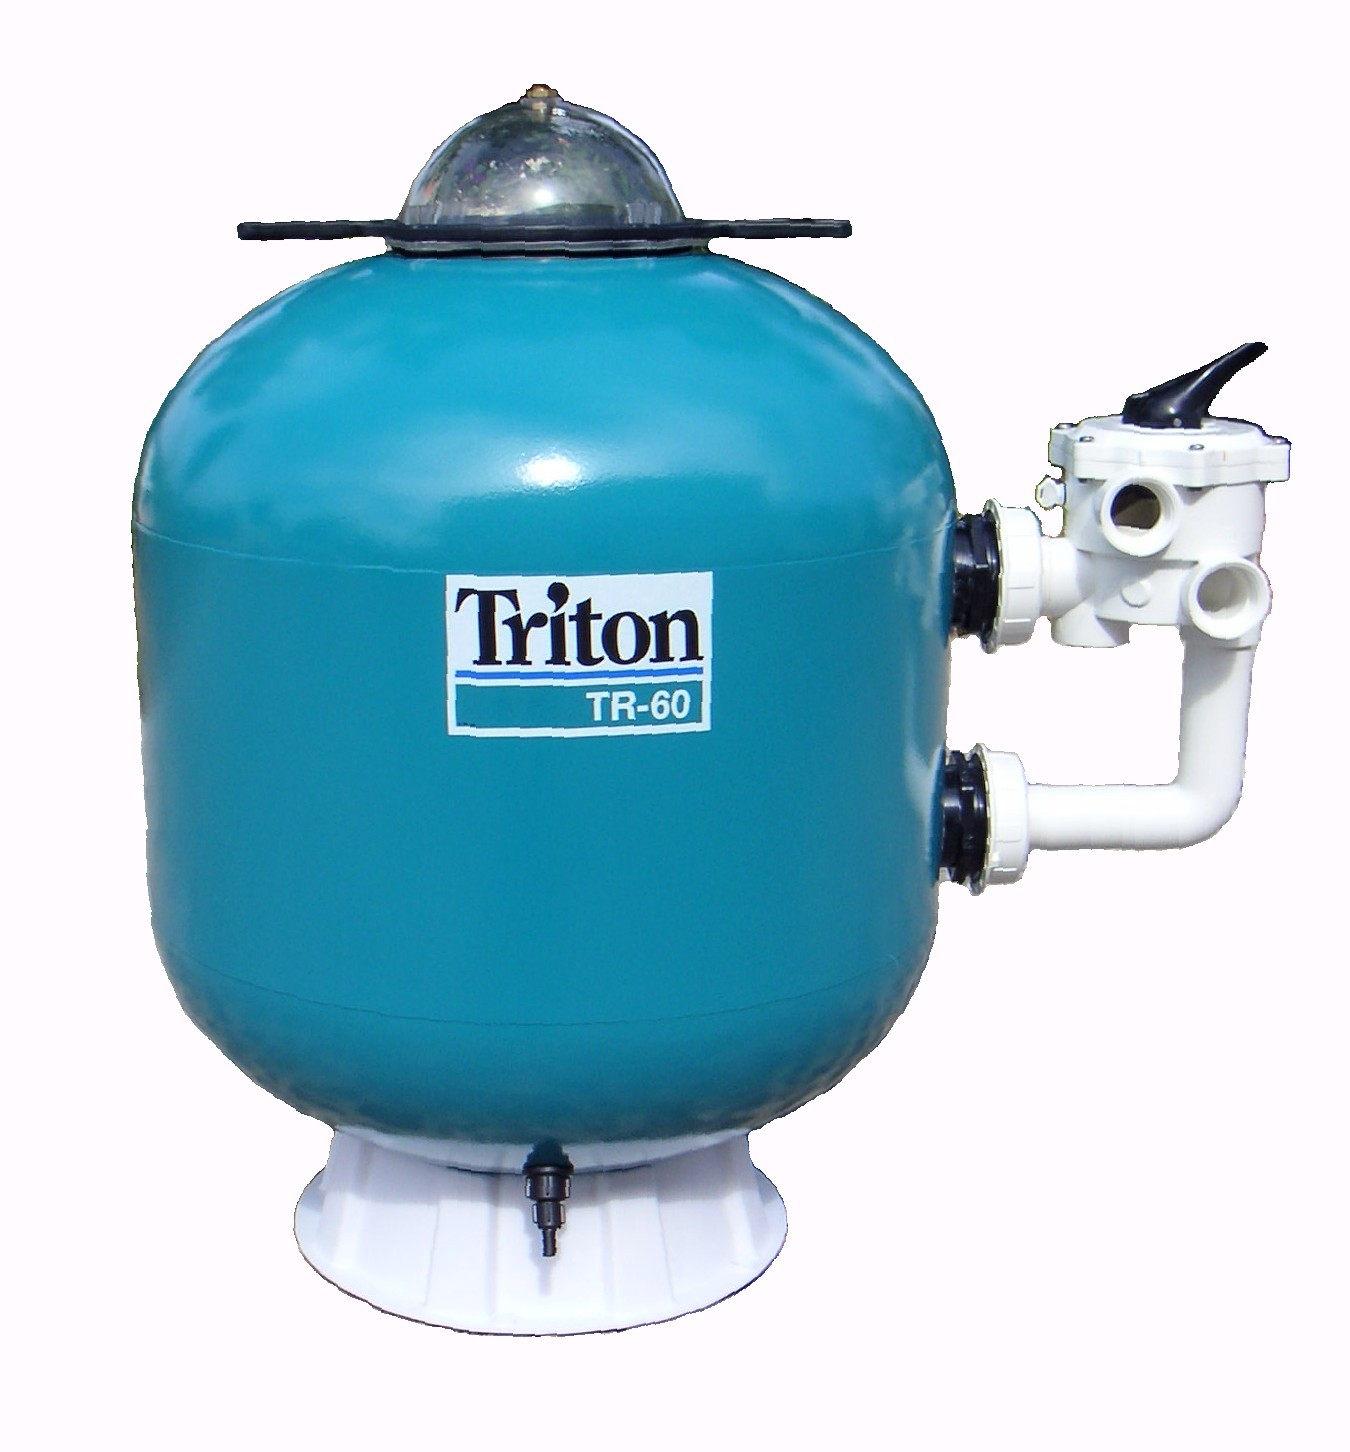 Triton and Atika Side Mount Swimming Pool Sand Filter - New Type Bottom  Diffuser System for TR140 - Complete Consists of Items 8 10 11 & 12